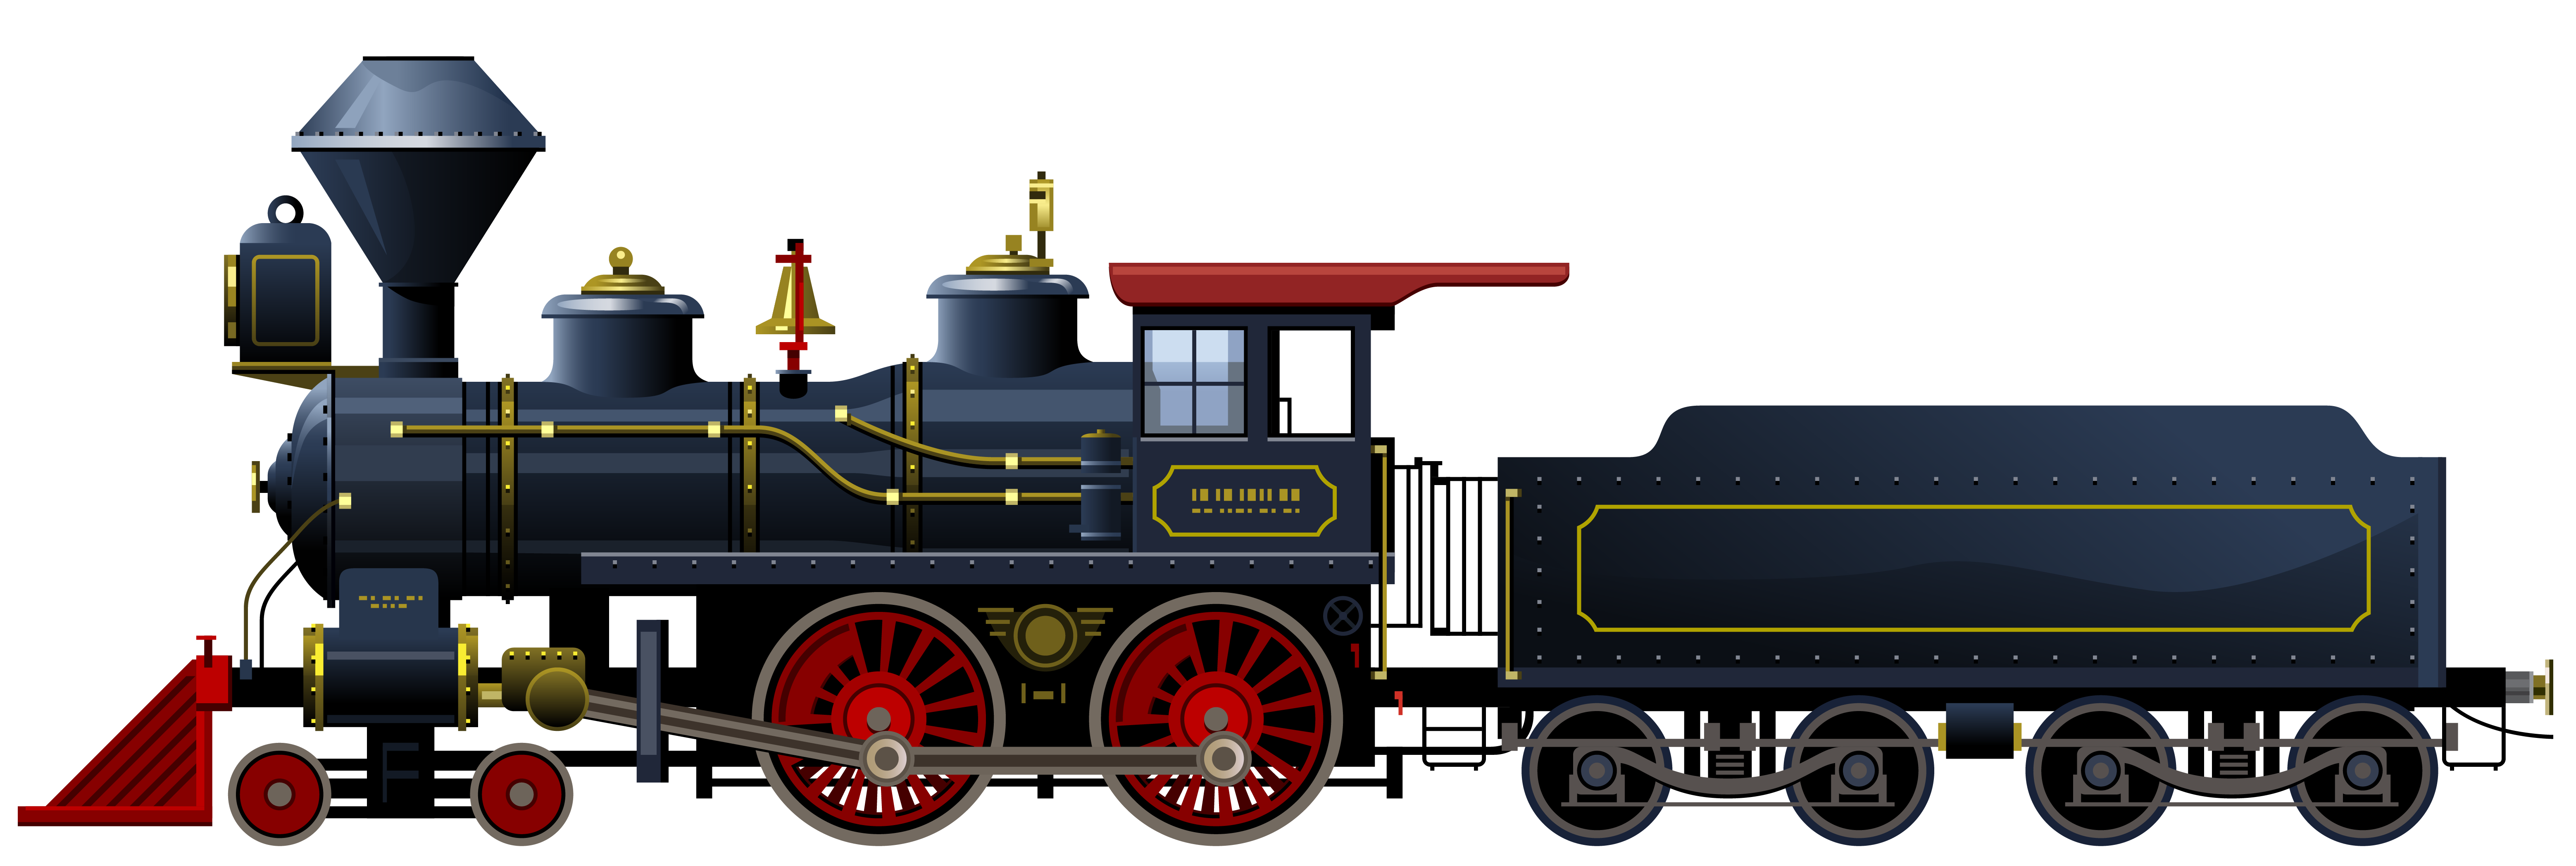 Locomotive clipart 20 free Cliparts | Download images on ...